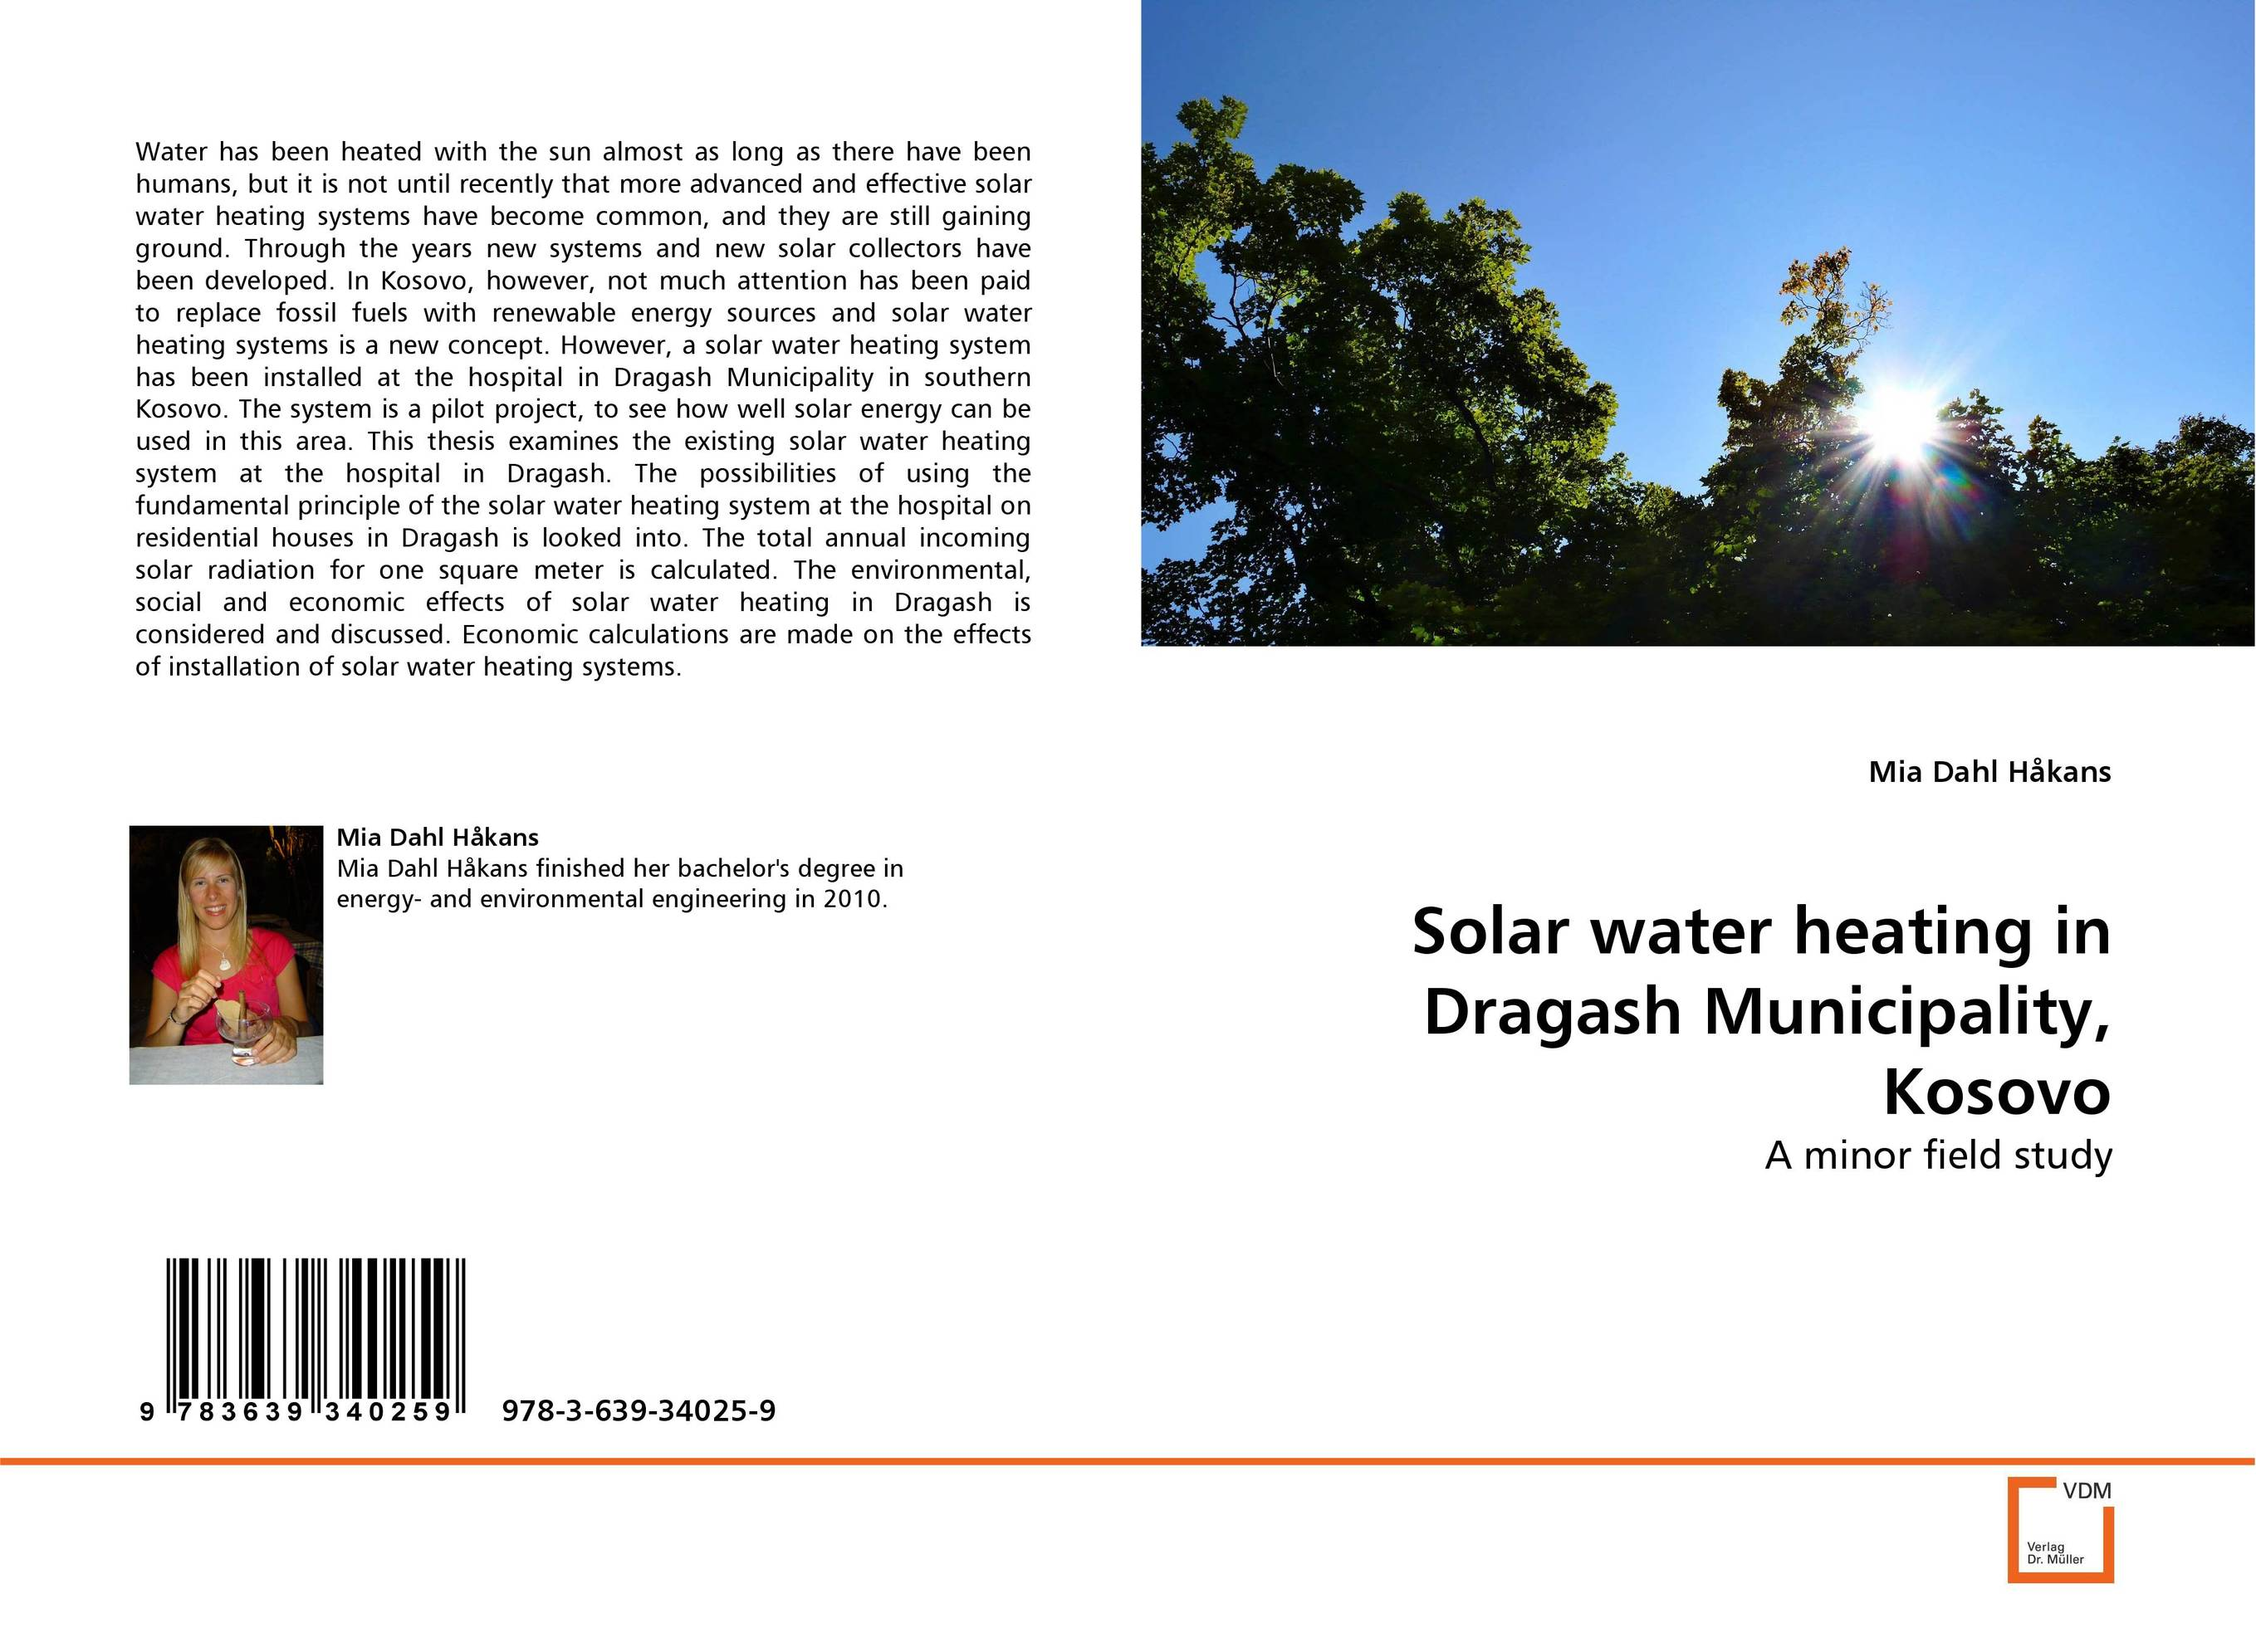 Solar water heating in Dragash Municipality, Kosovo bride of the water god v 3